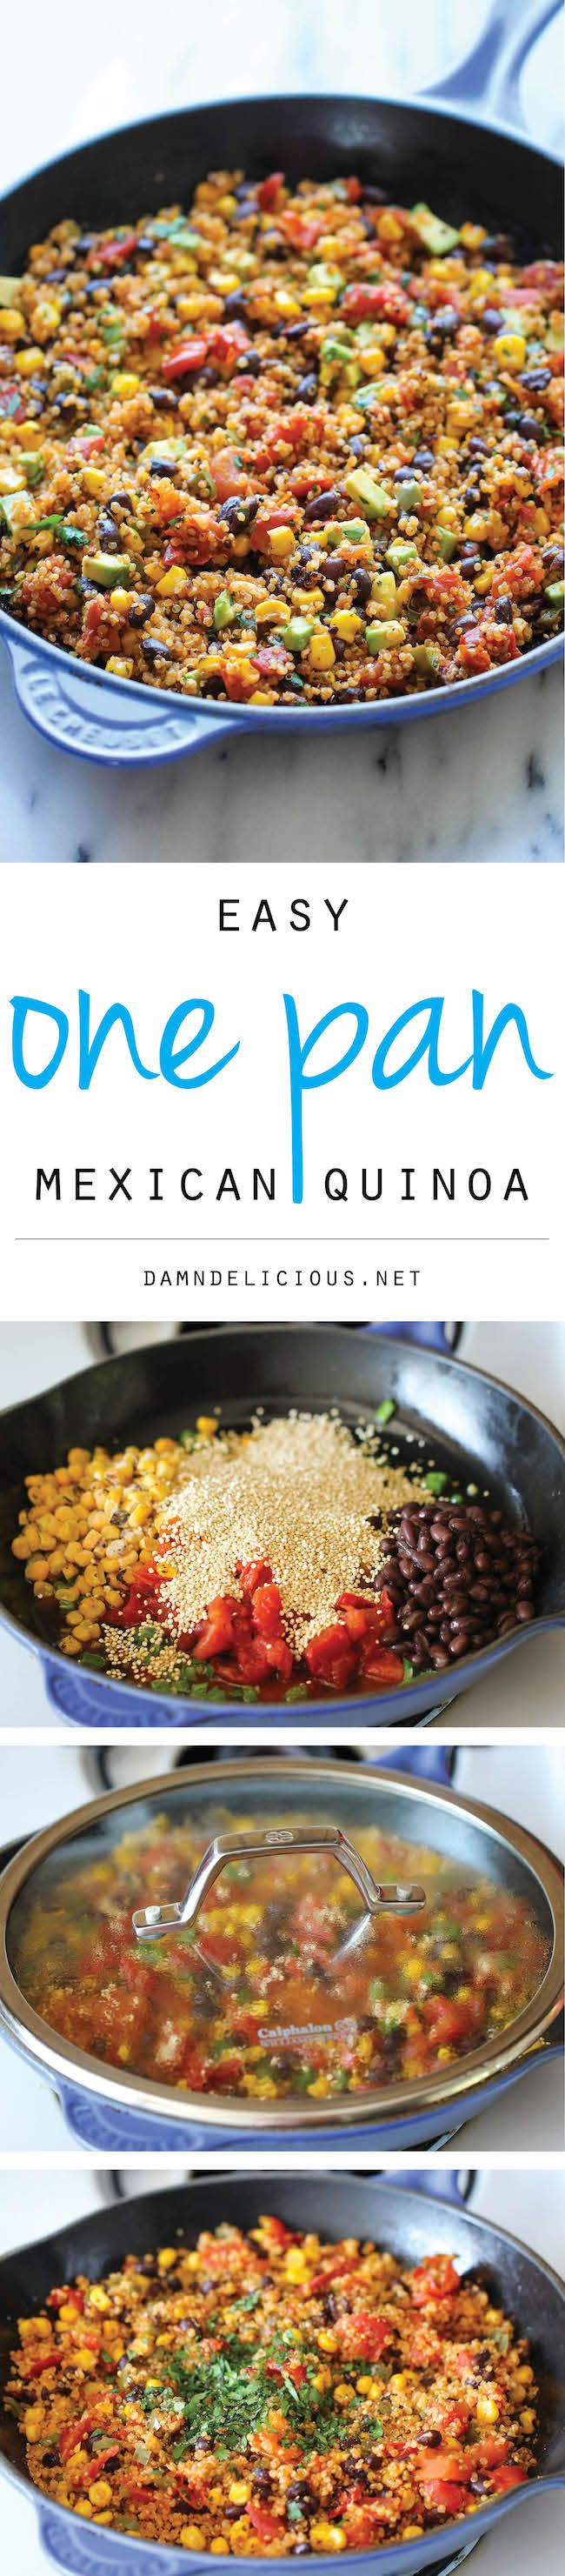 One Pan Mexican Quinoa – Wonderfully light, healthy and nutritious. And its so easy to make – even the quinoa is cooked right in